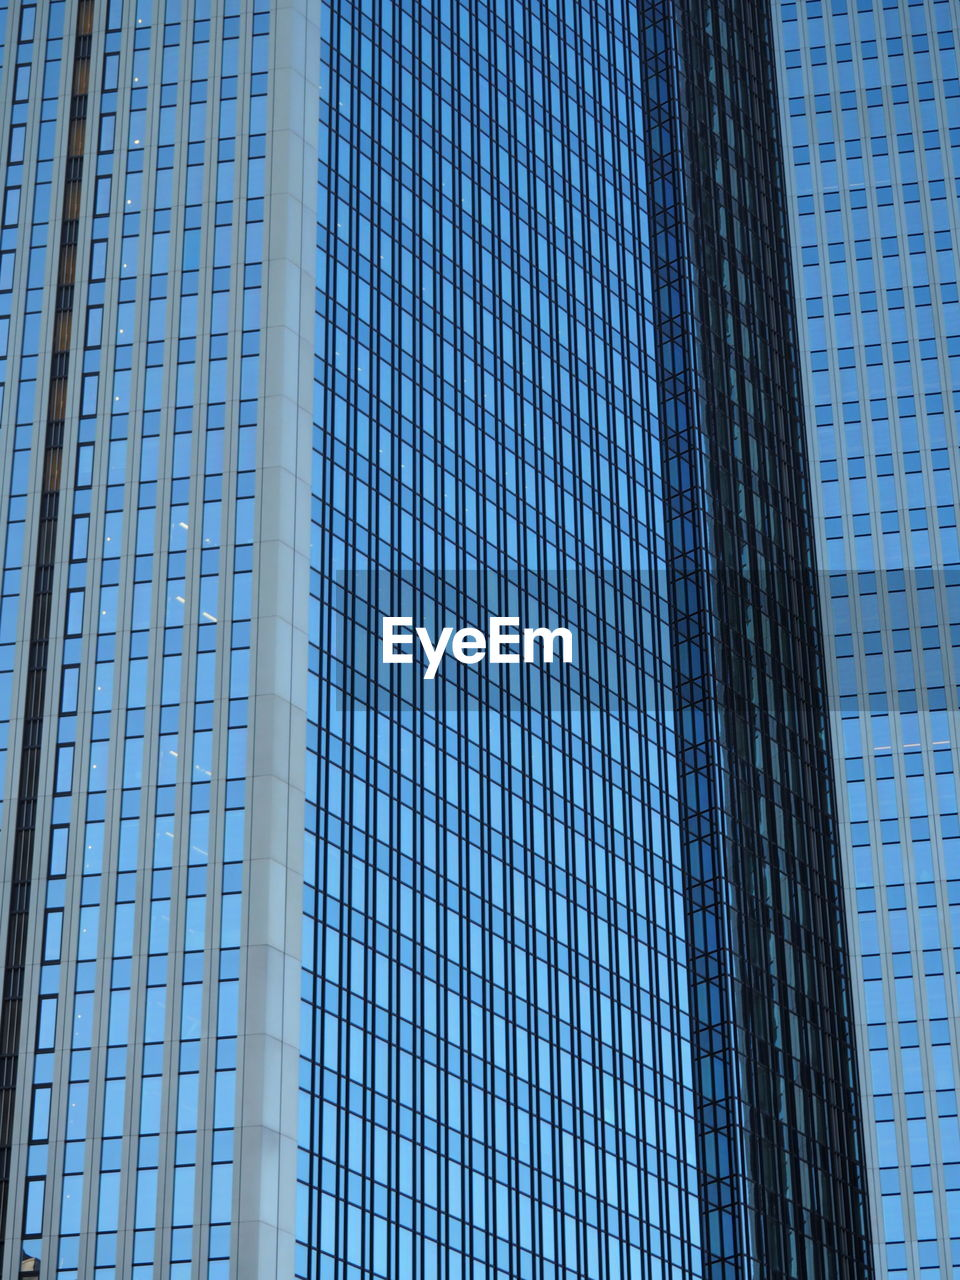 low angle view, architecture, skyscraper, built structure, modern, building exterior, blue, tower, day, full frame, backgrounds, tall, city, outdoors, window, no people, corporate business, sky